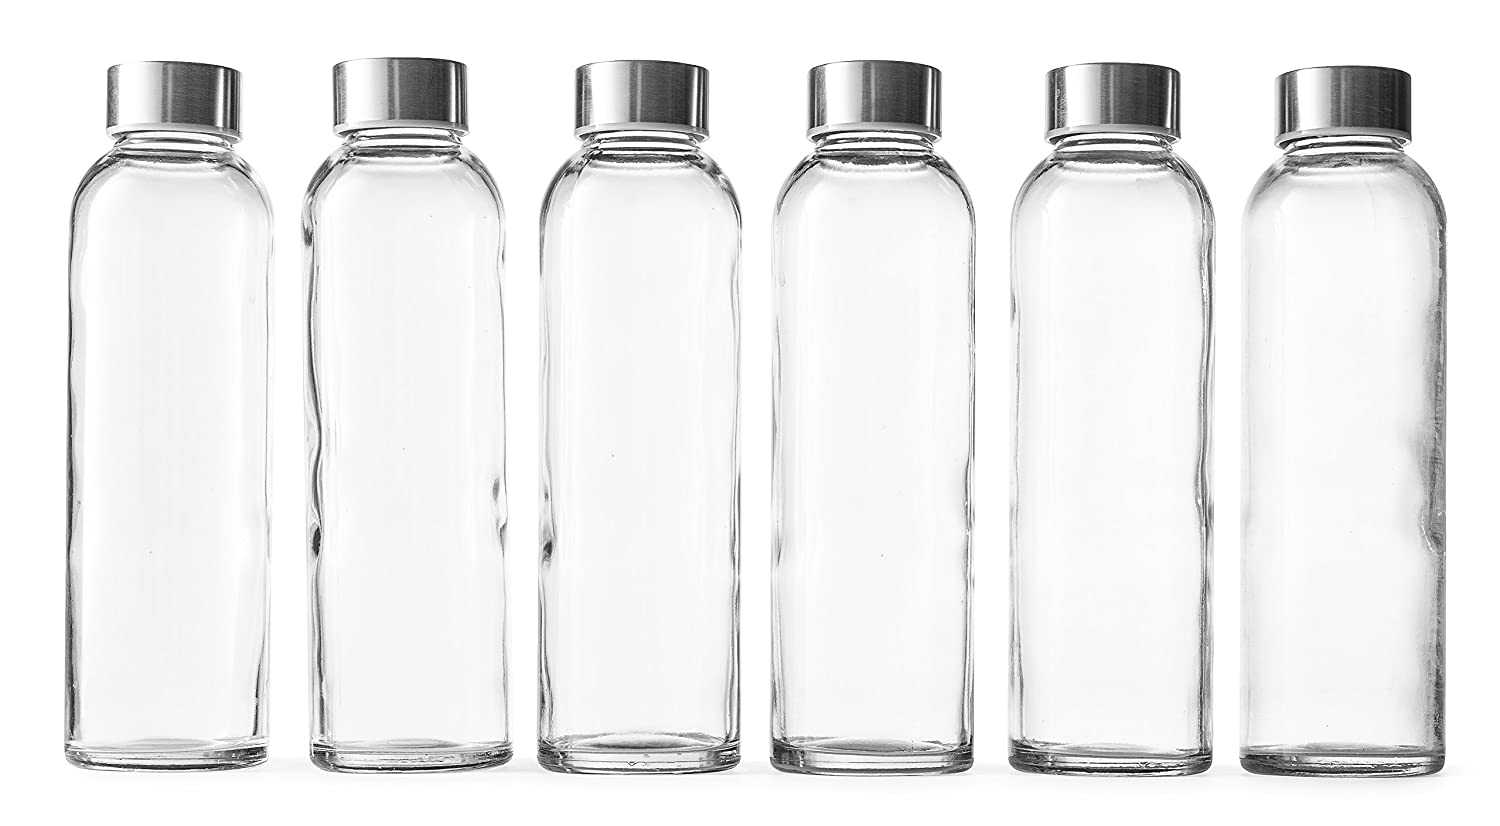 Epica 18-Oz. Glass Beverage Bottles, Set of 6 SYNCHKG035906